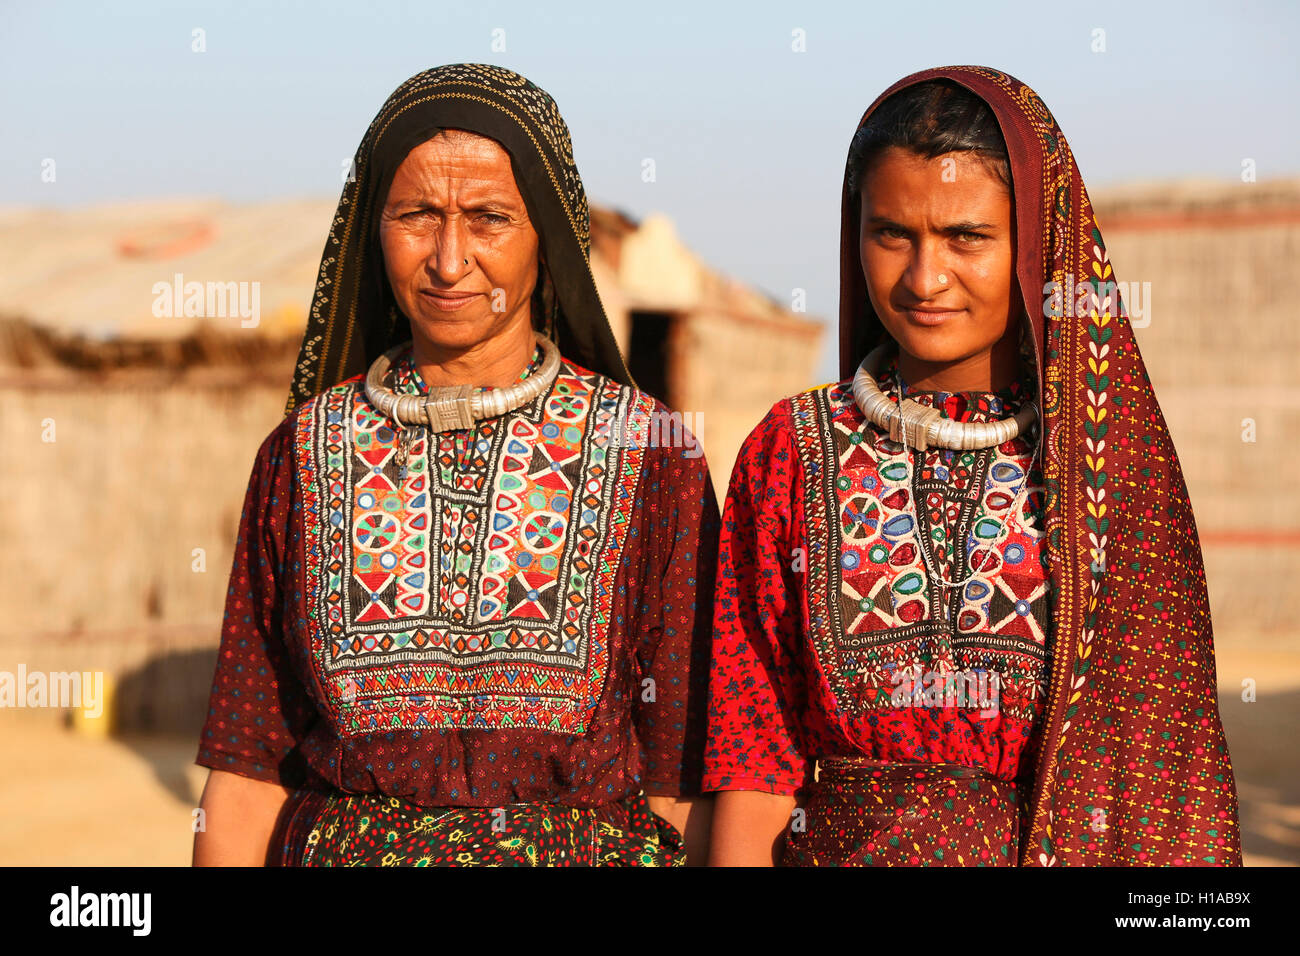 Tribal women in traditional dress, FAKIRANI JAT, Medi village, Kutch, Gujarat, India - Stock Image